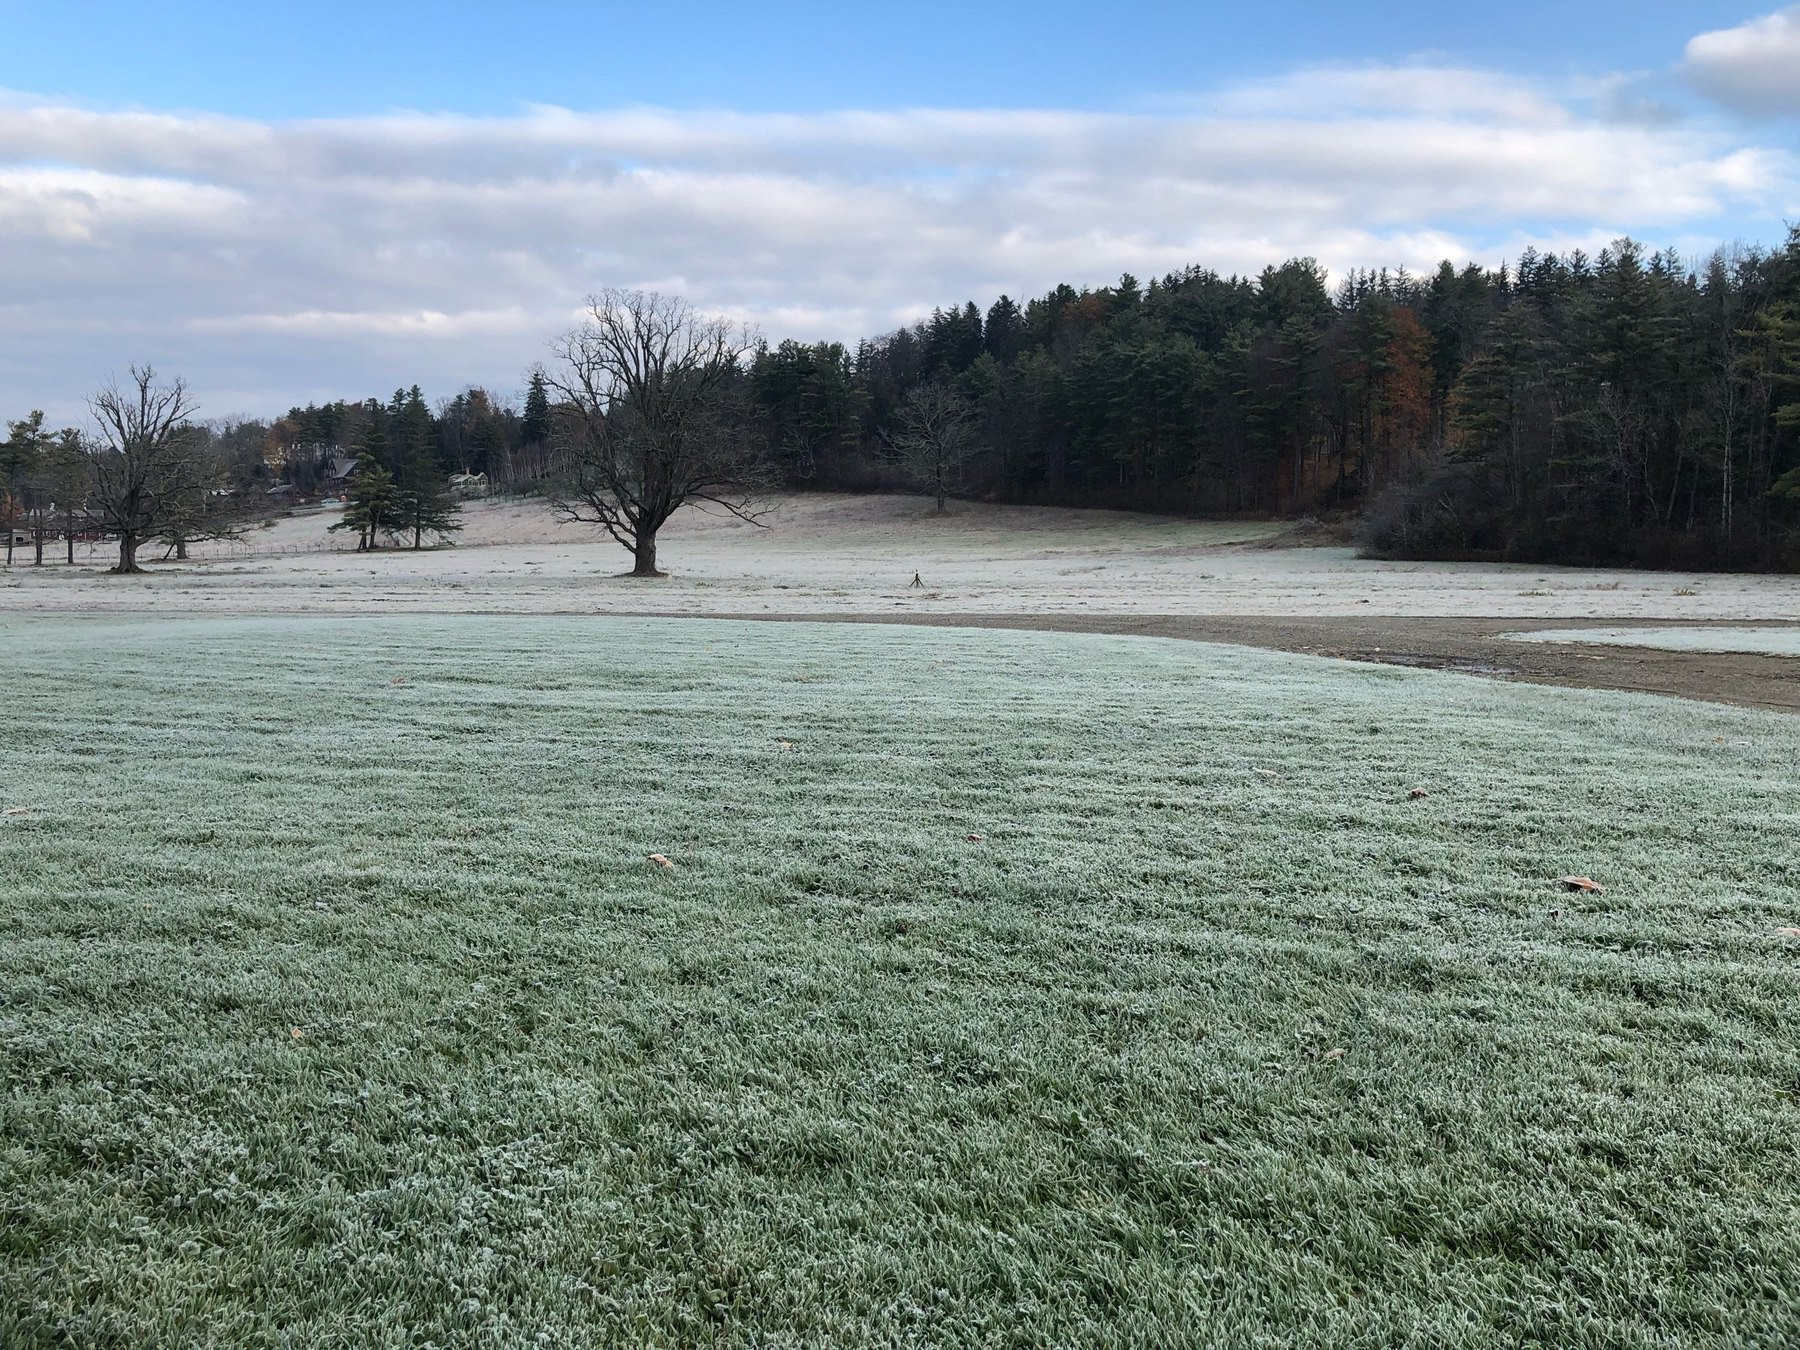 Green New England field covered in frost.